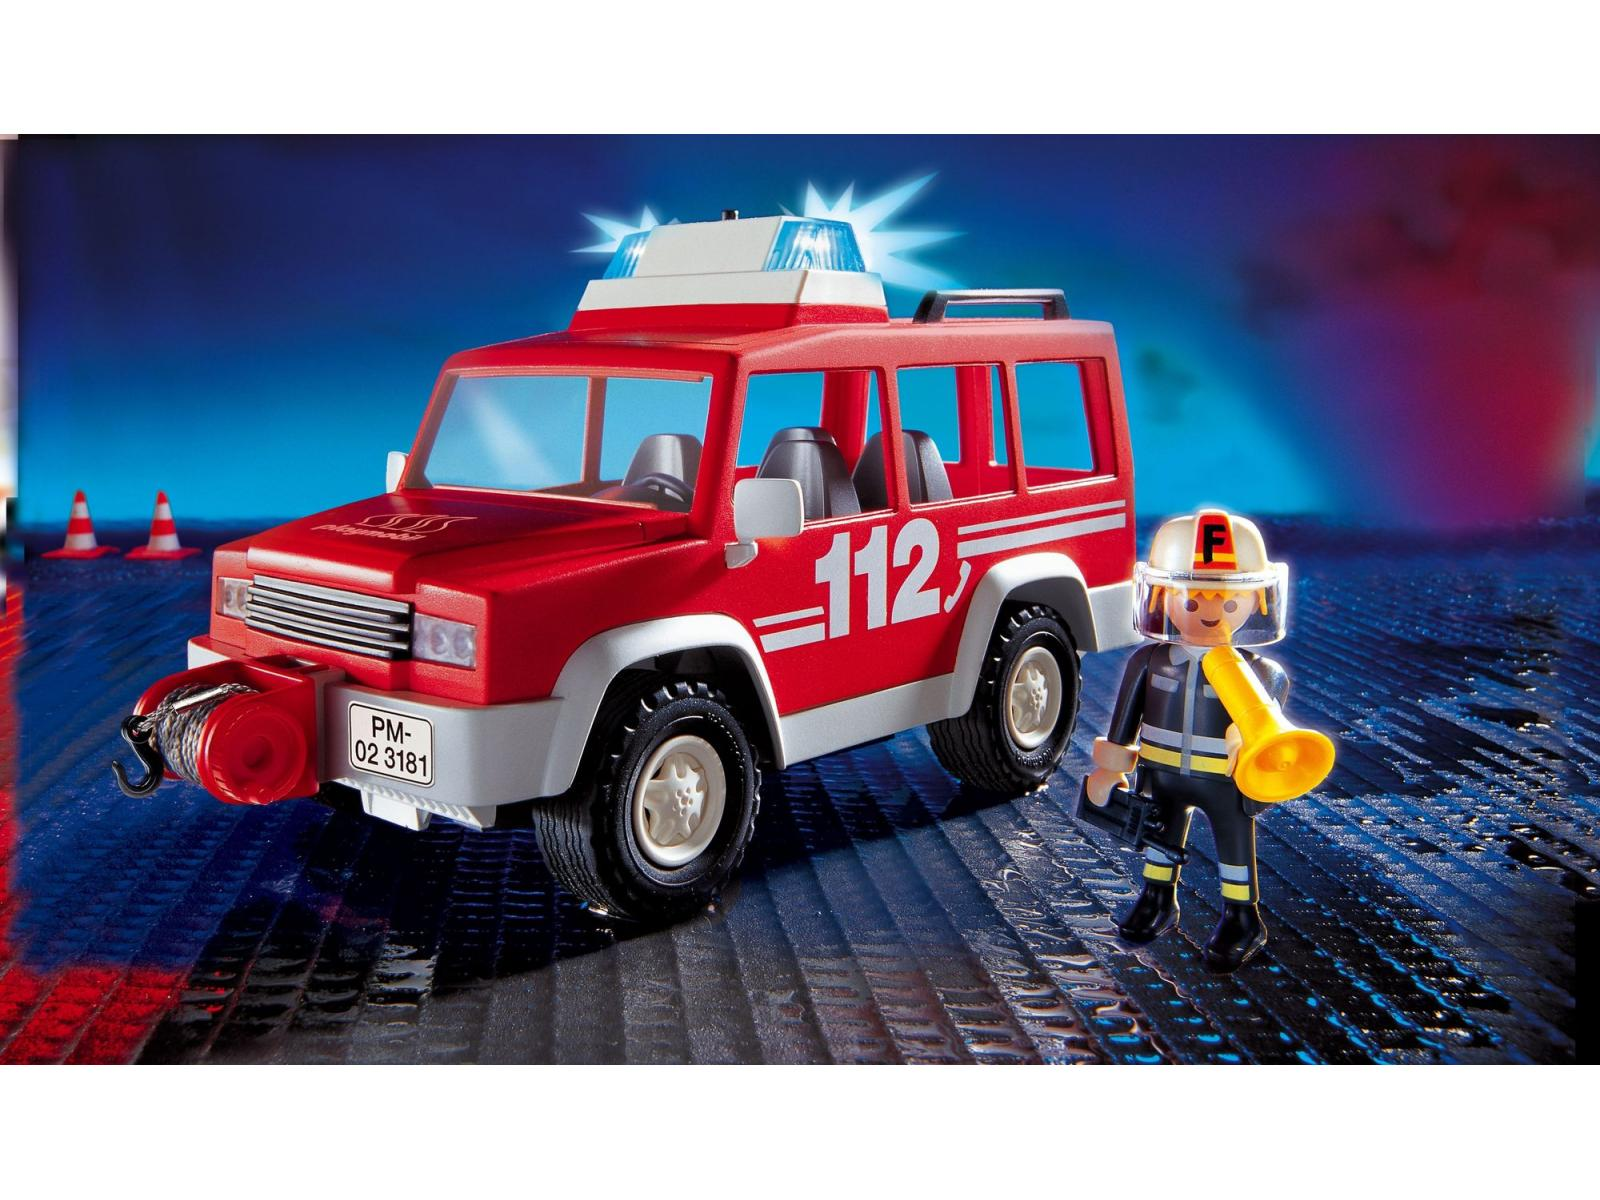 Playmobil pompier 4x4 d 39 intervention - Playmobil pompiers ...